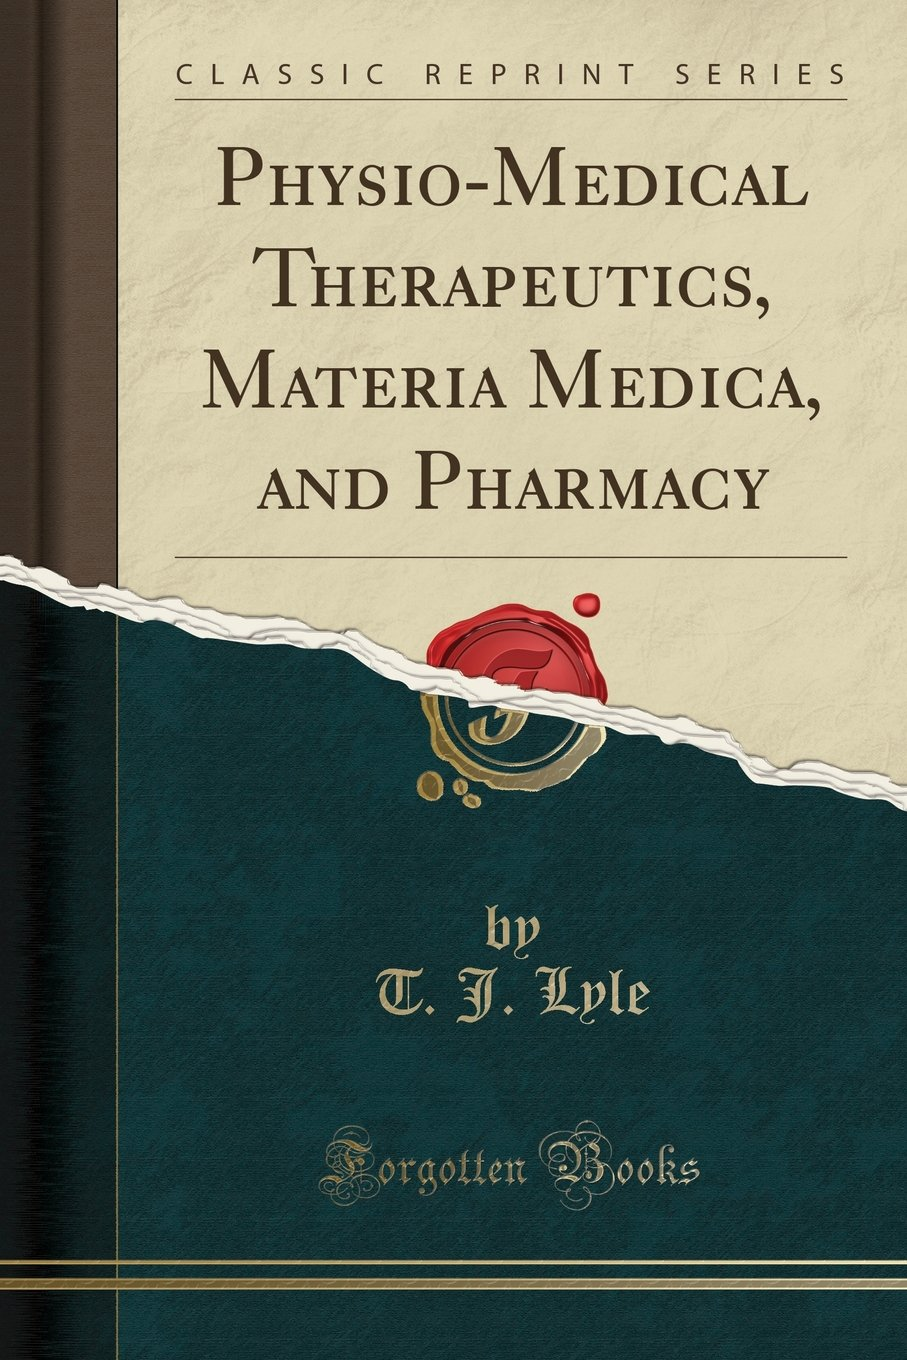 Physio-medical therapeutics, materia medica and pharmacy